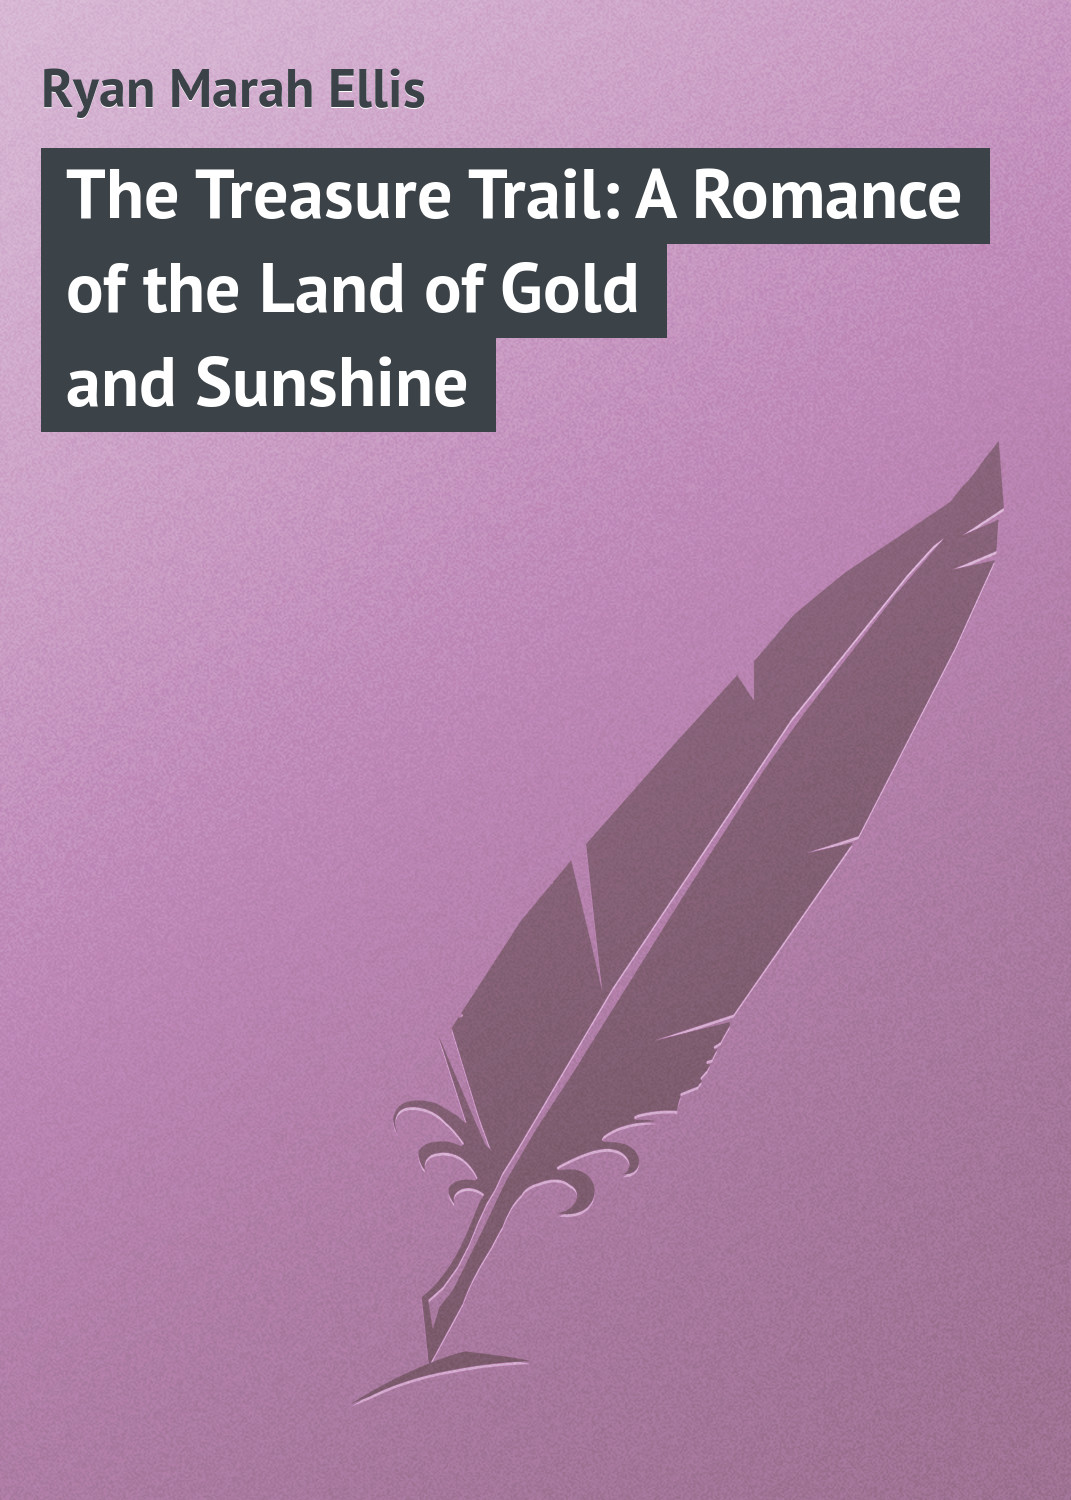 Ryan Marah Ellis The Treasure Trail: A Romance of the Land of Gold and Sunshine ryan marah ellis told in the hills a novel